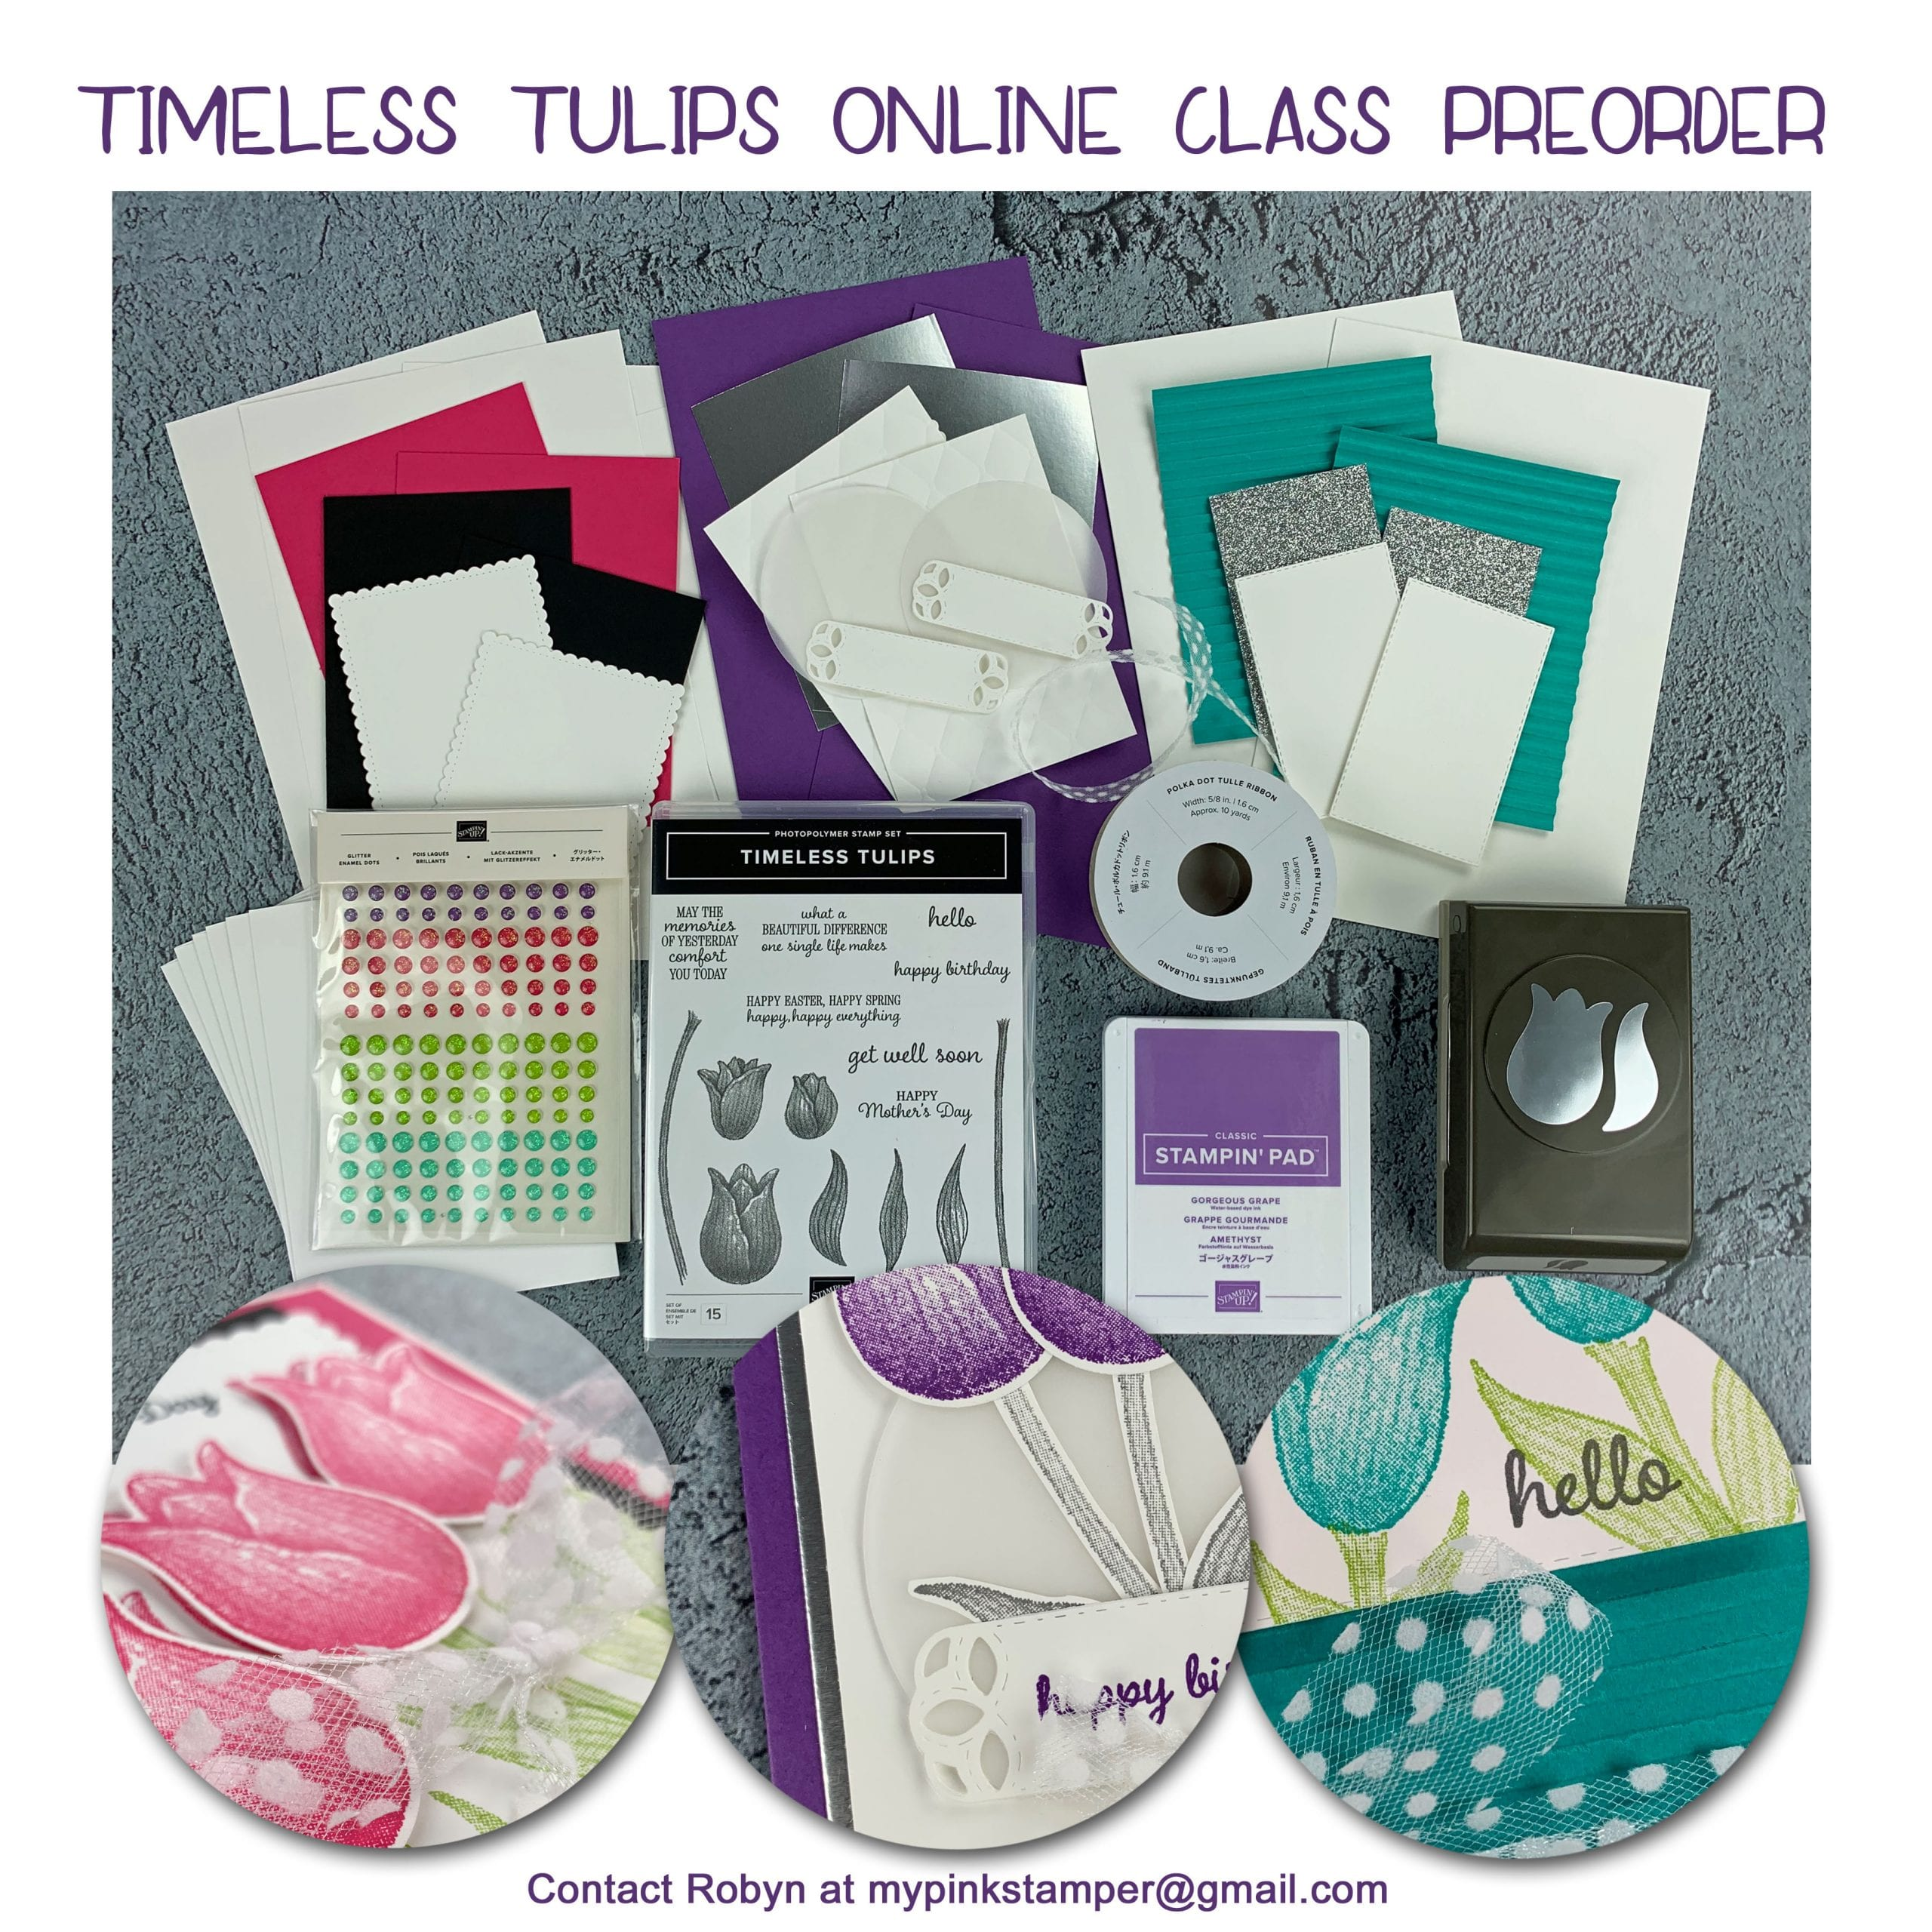 {NEW}Stampin' Up! Timeless Tulips Online Class Preorder